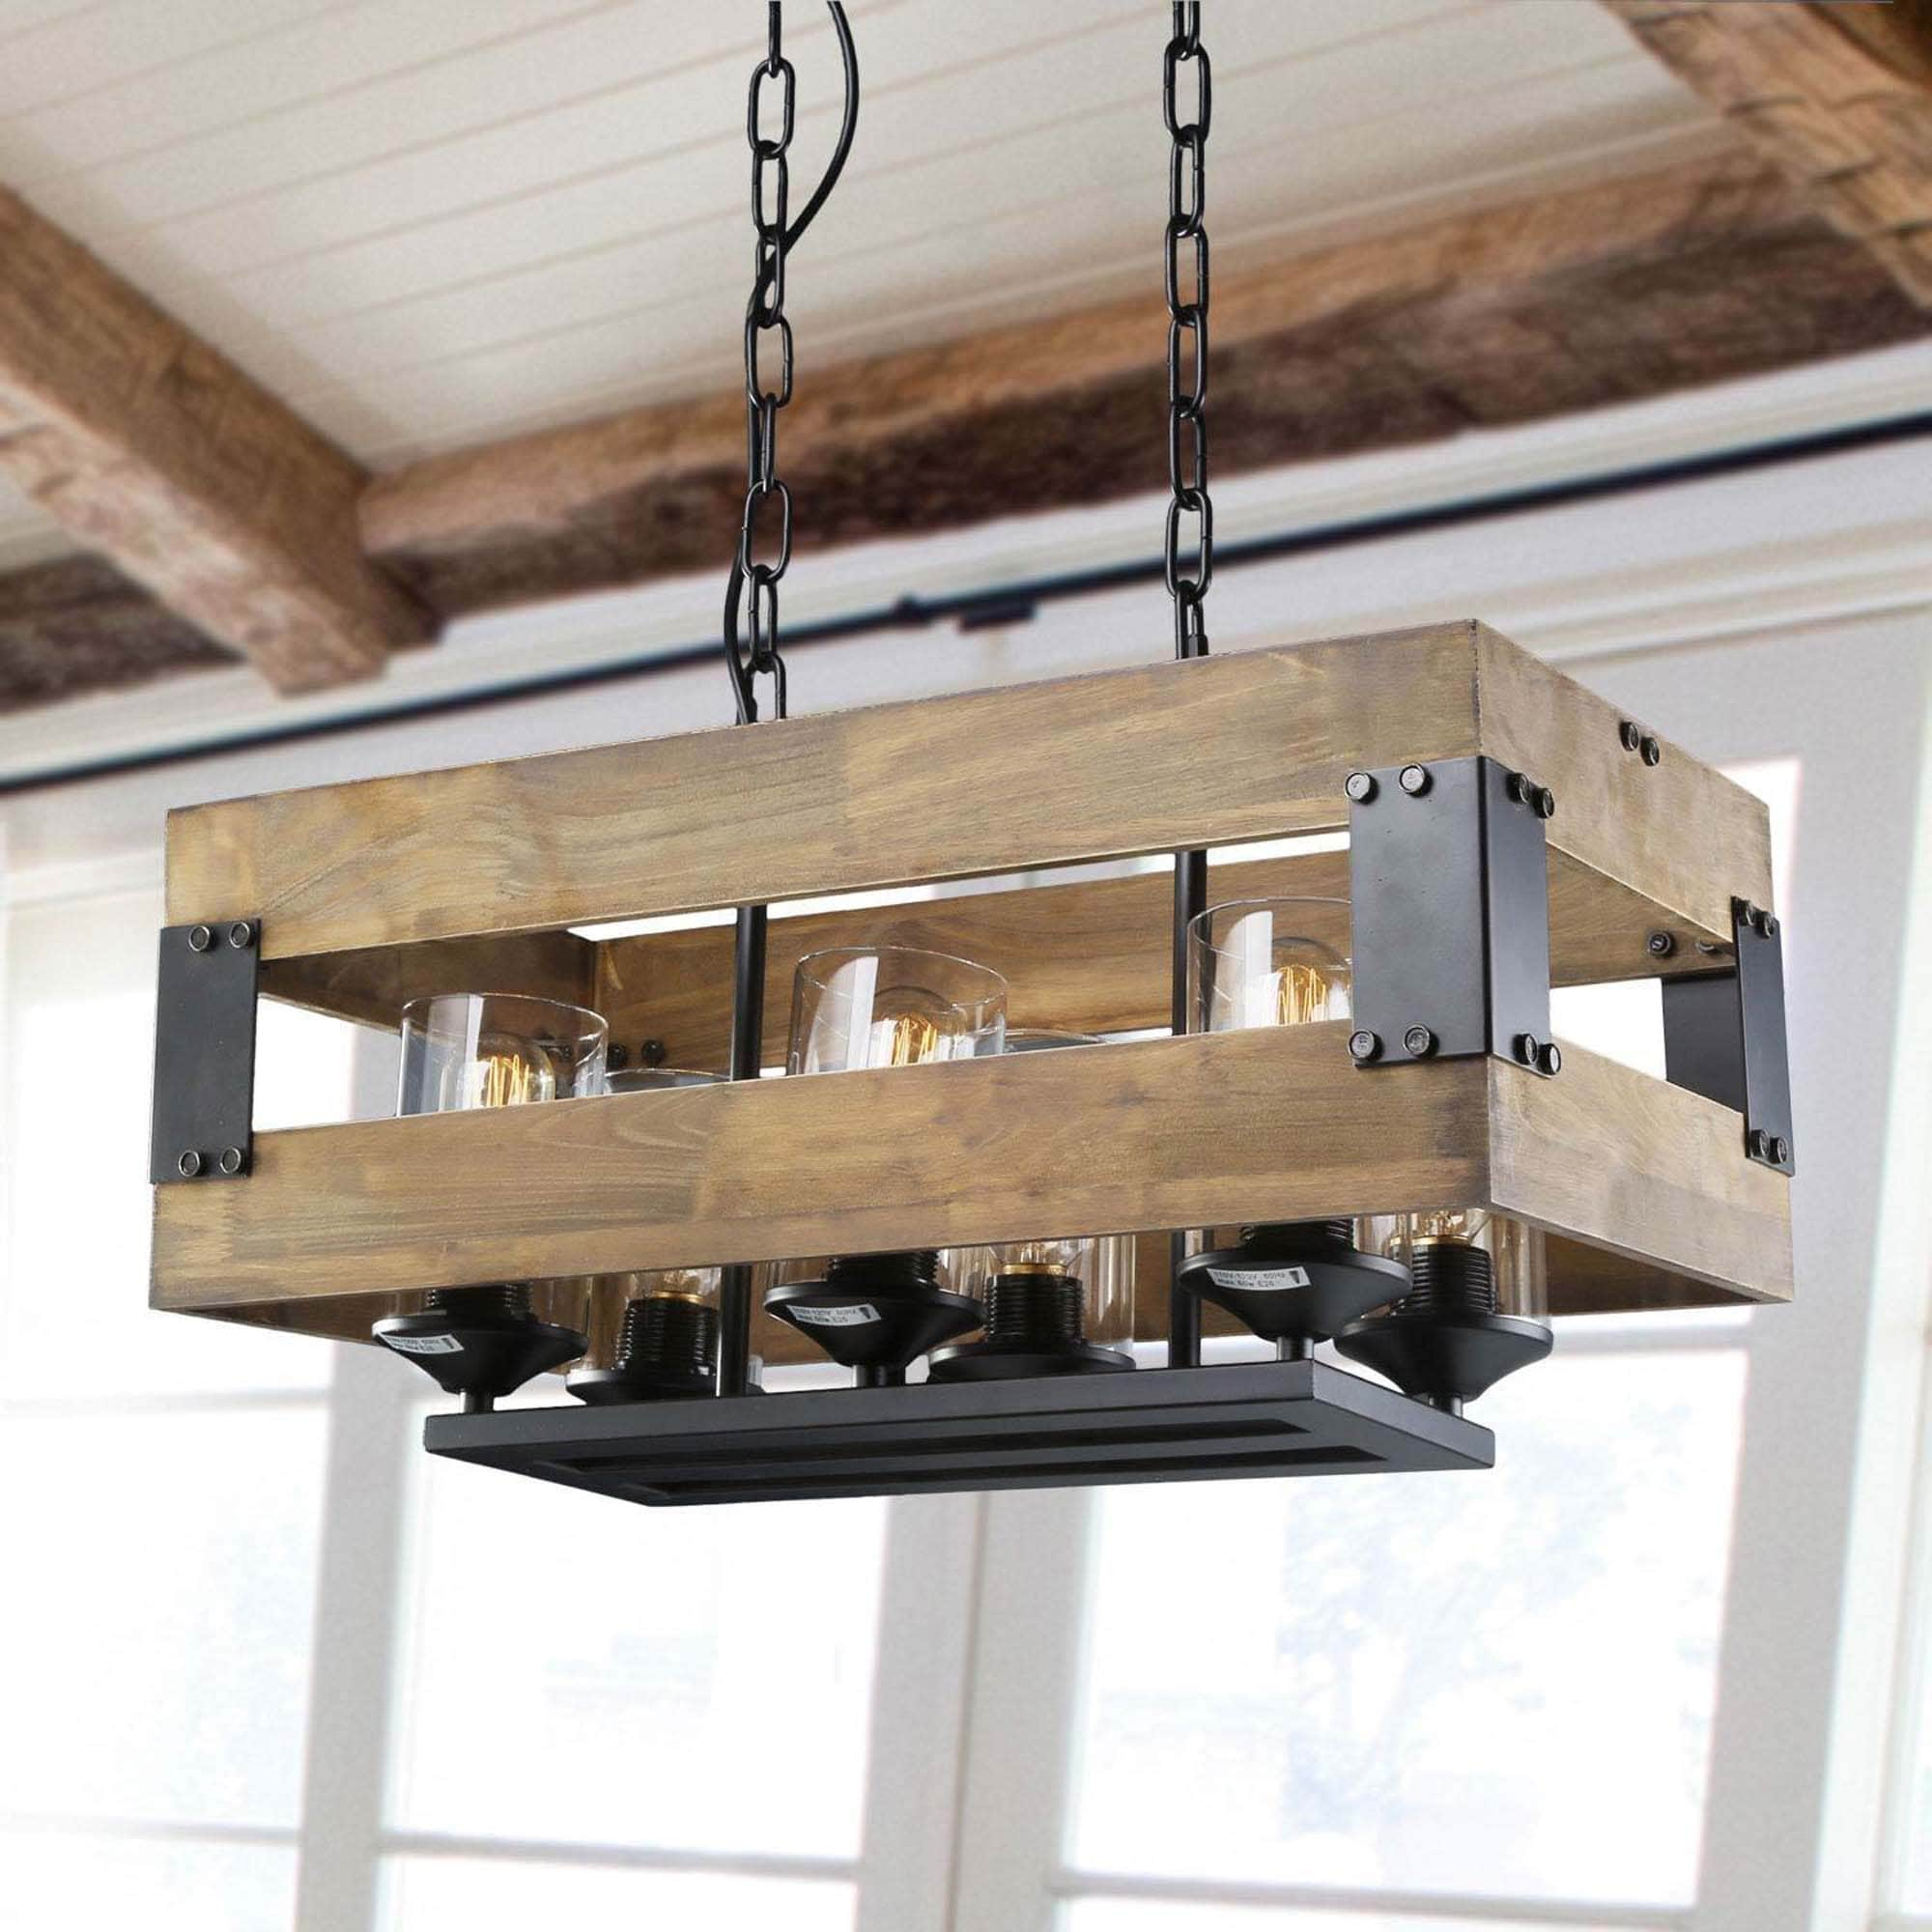 Shop Black Friday Deals On Lnc Farmhouse 6 Light Wood Chandeliers Rustic Kitchen Island Lighting 22 X 11 25 X 11 75 Overstock 25454923